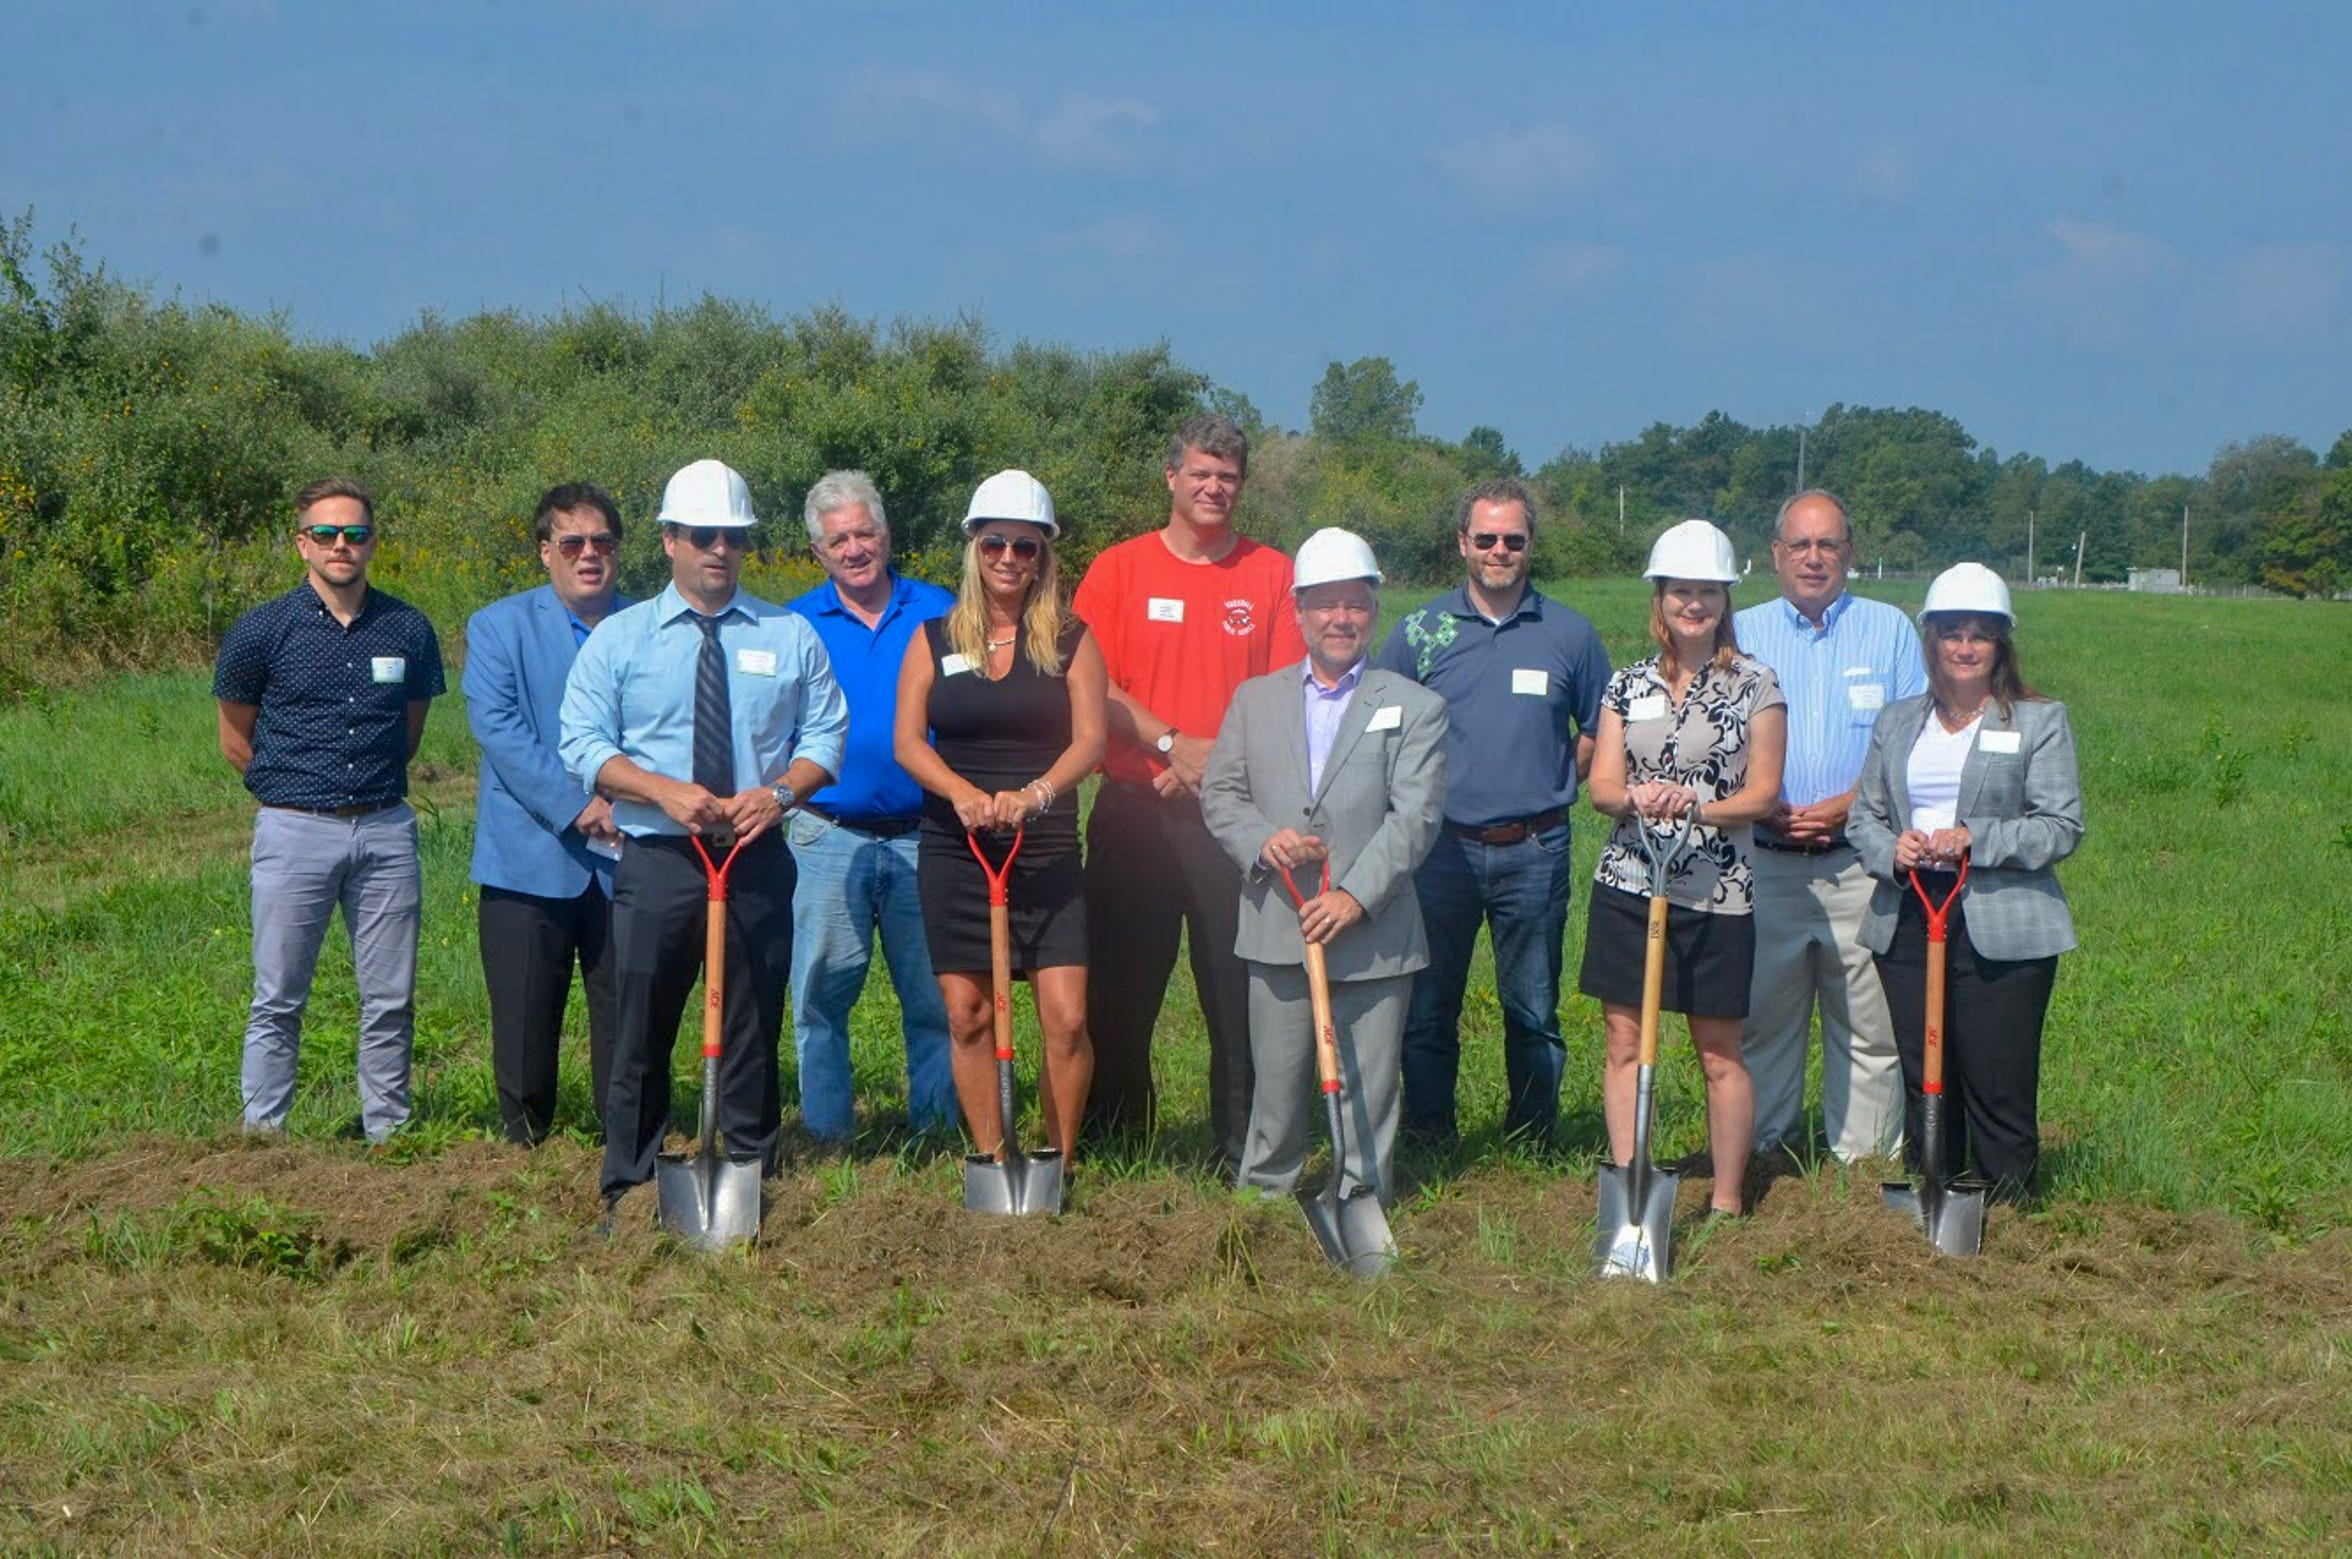 Representatives from Green Eden, a new medical marijuana growing facility in Marshall, pose alongside representatives from the city of Marshall at Green Eden's groundbreaking on Aug. 27, 2018, at 16500 Division Dr., Marshall, MI.